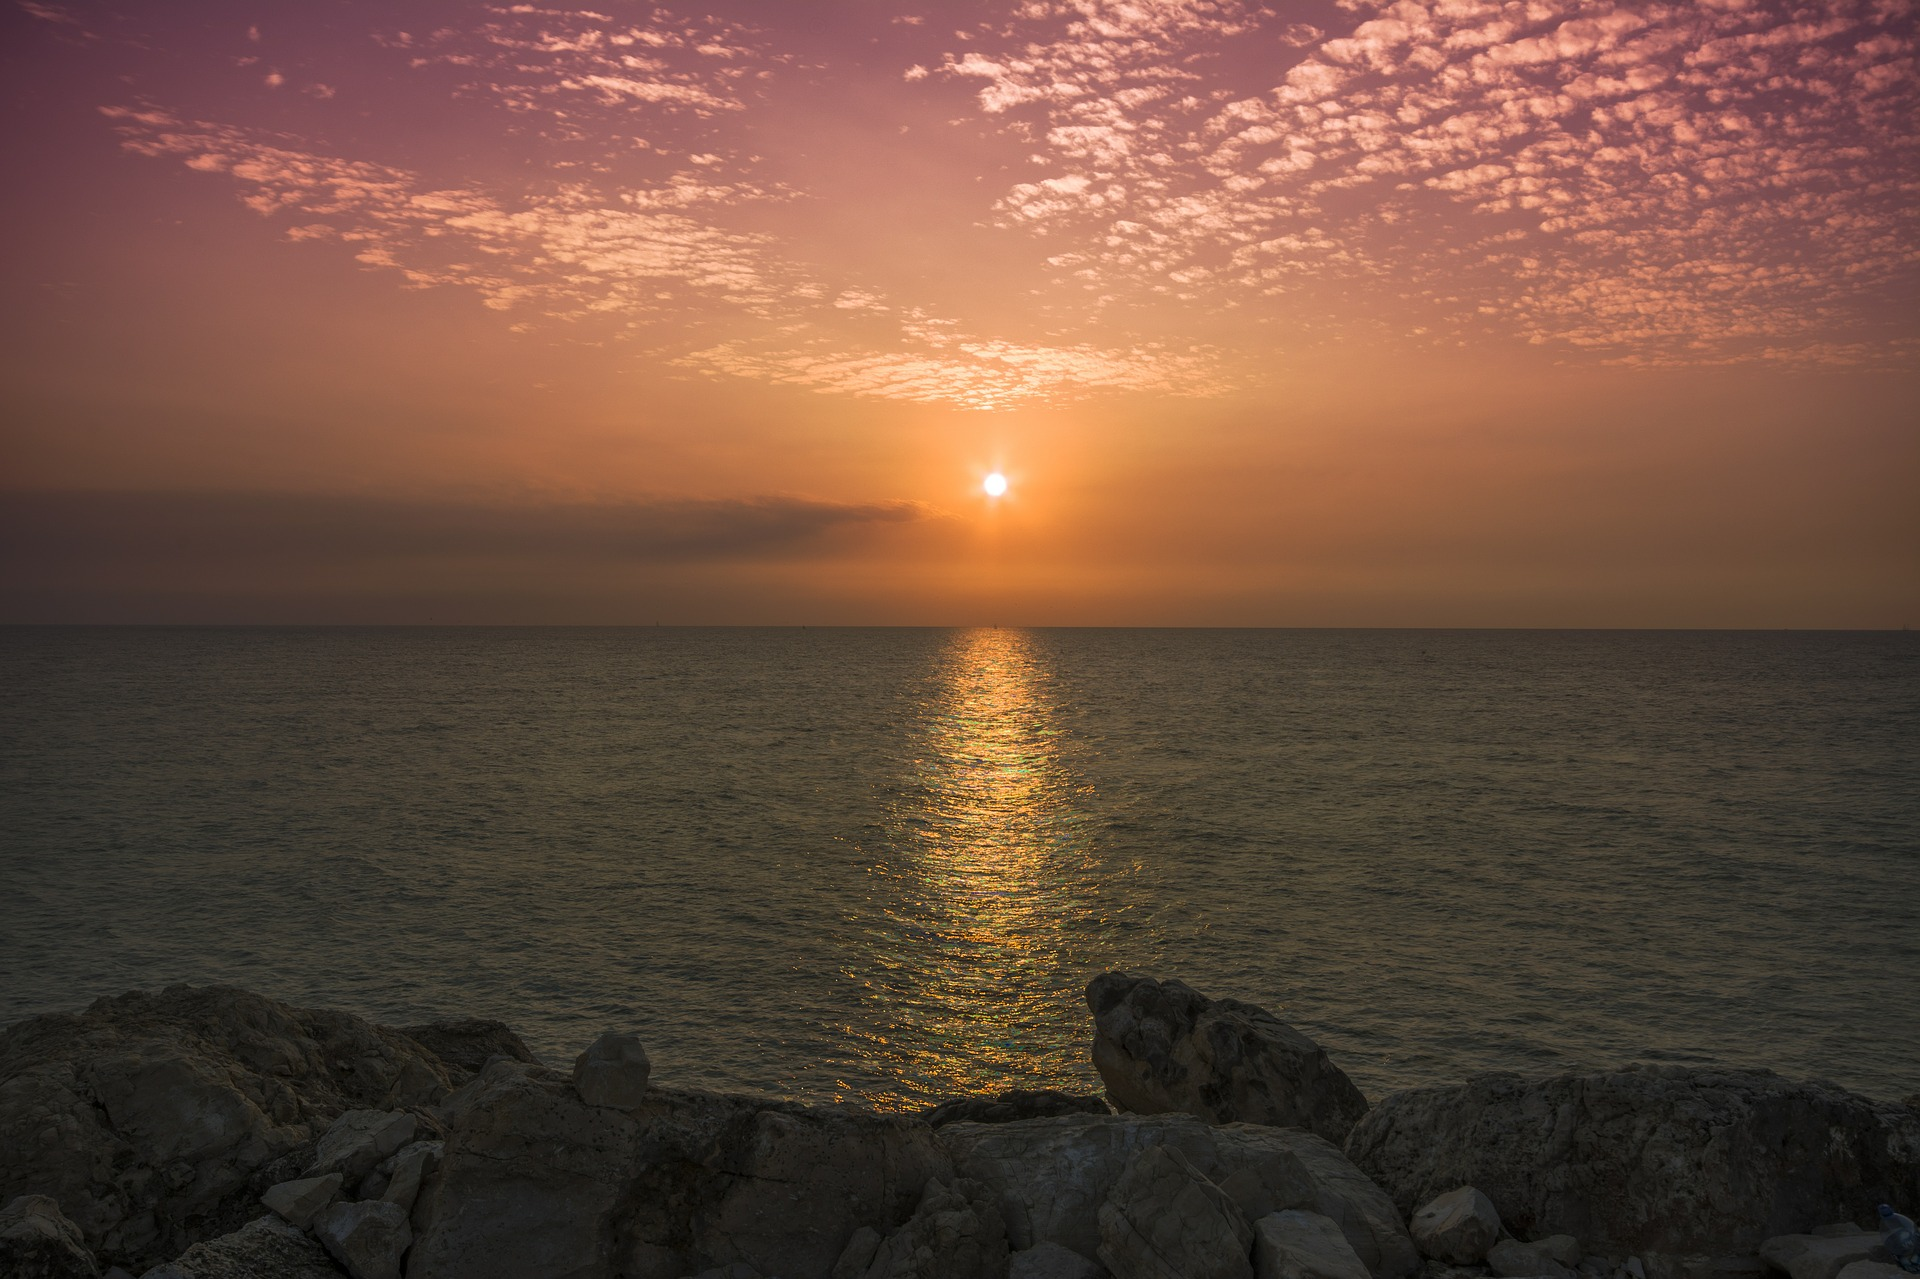 watch sunset in israel